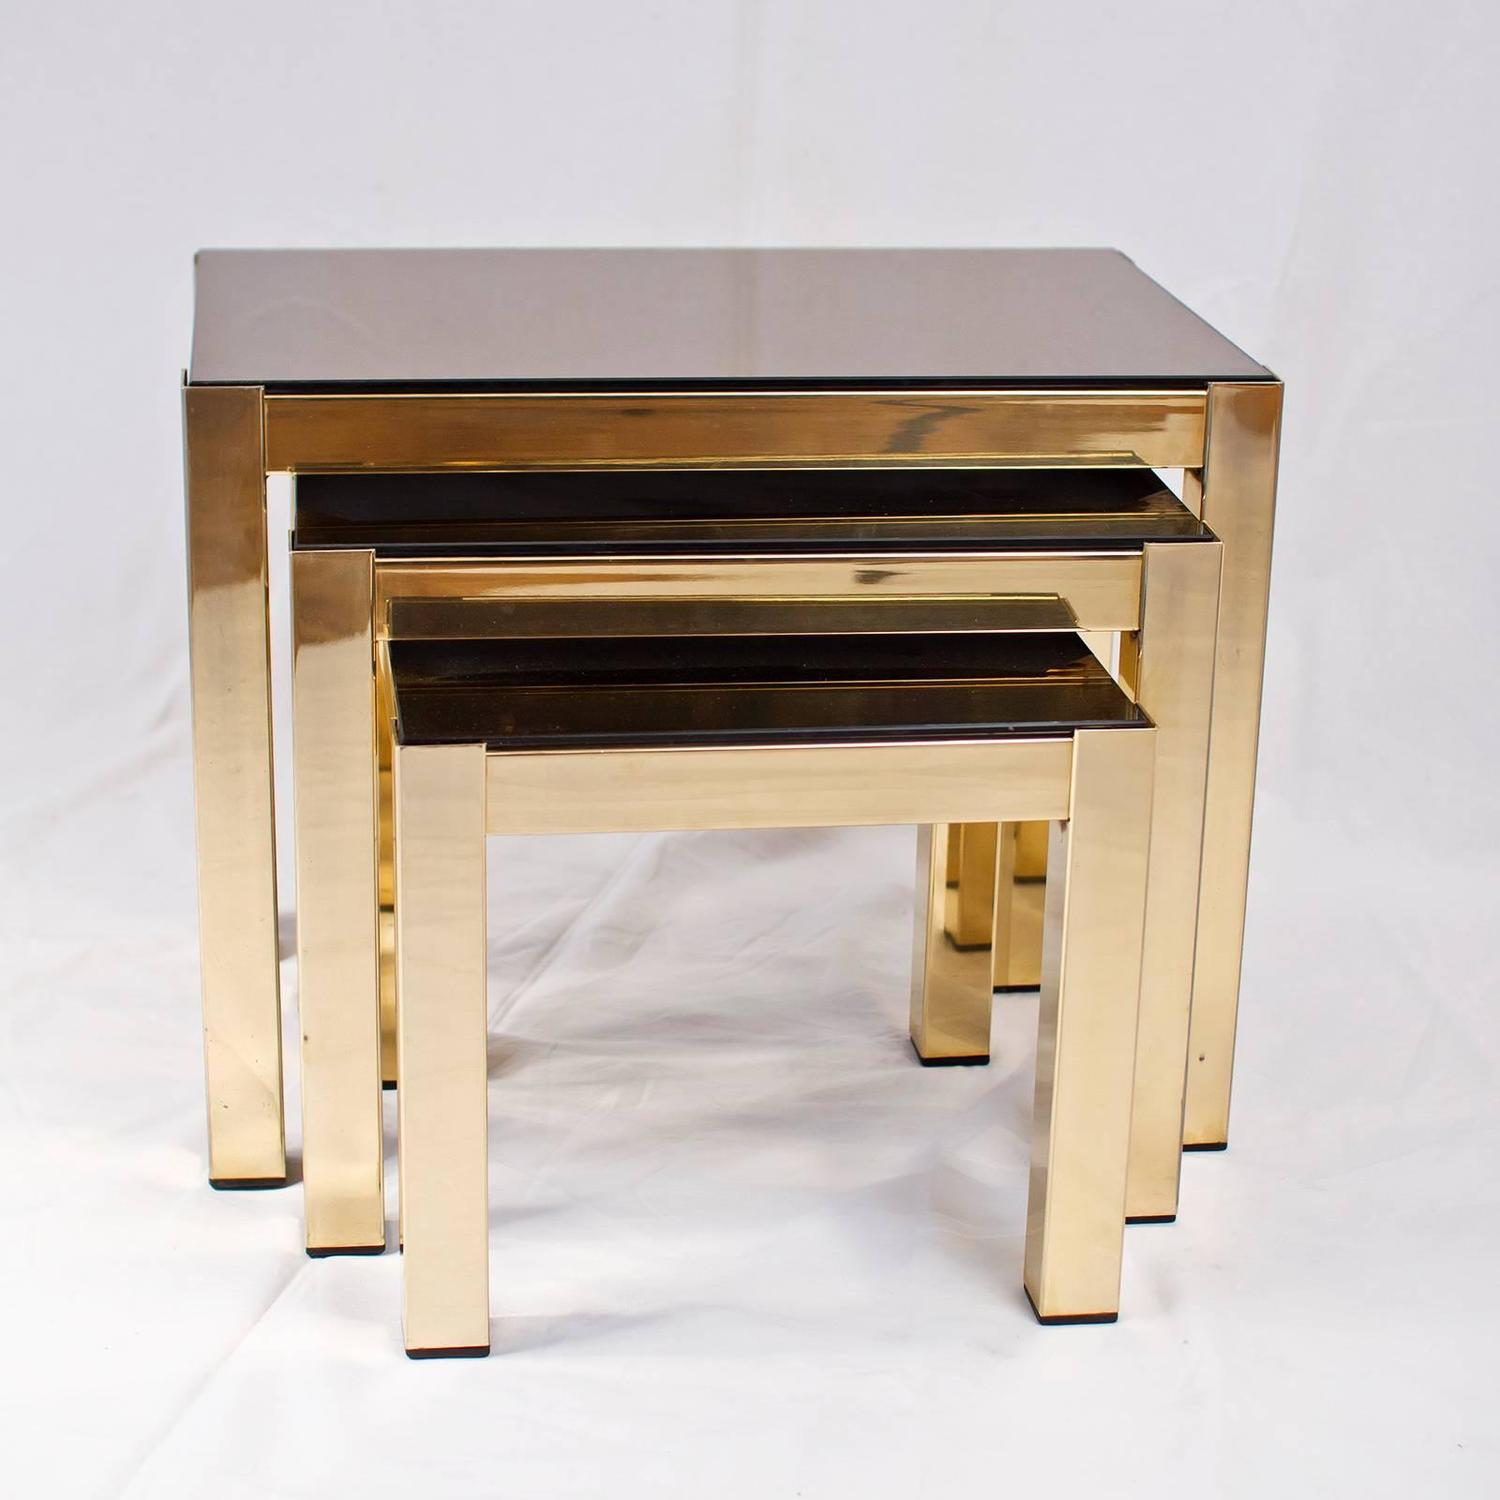 Gold Nesting Tables ~ Gold plated nesting tables joevin ortjens galerie